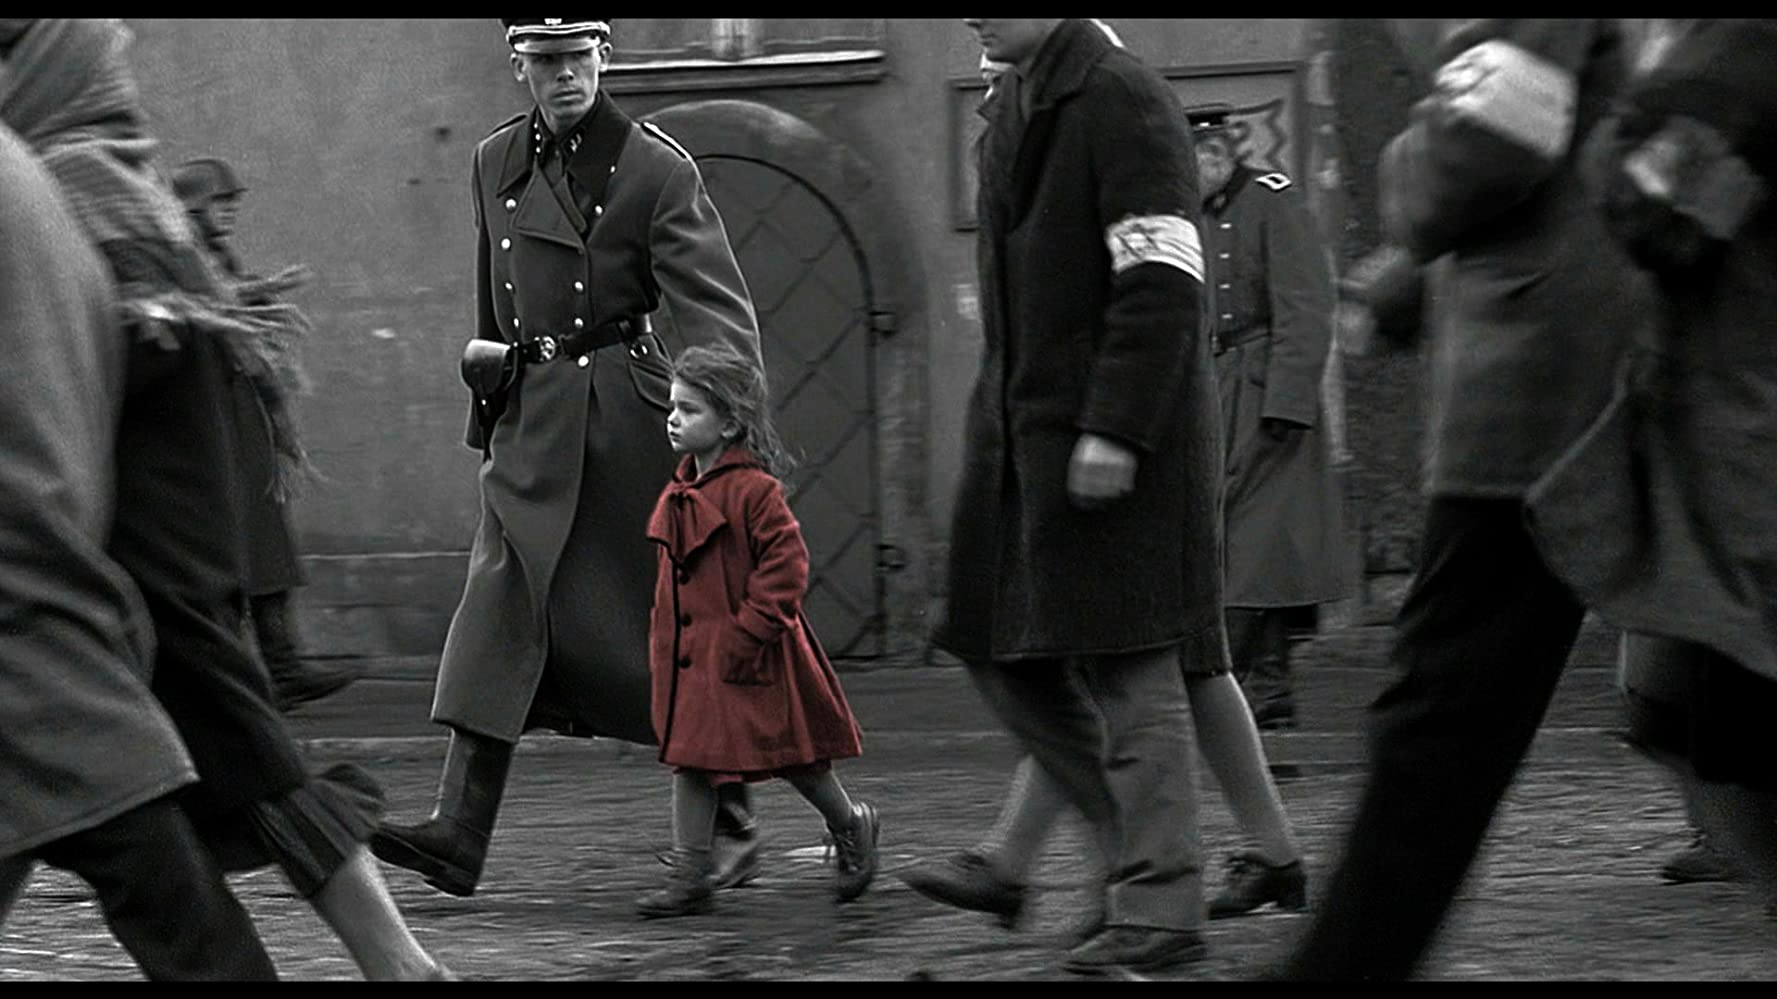 Oliwia Dabrowska in Schindler's List (1993)